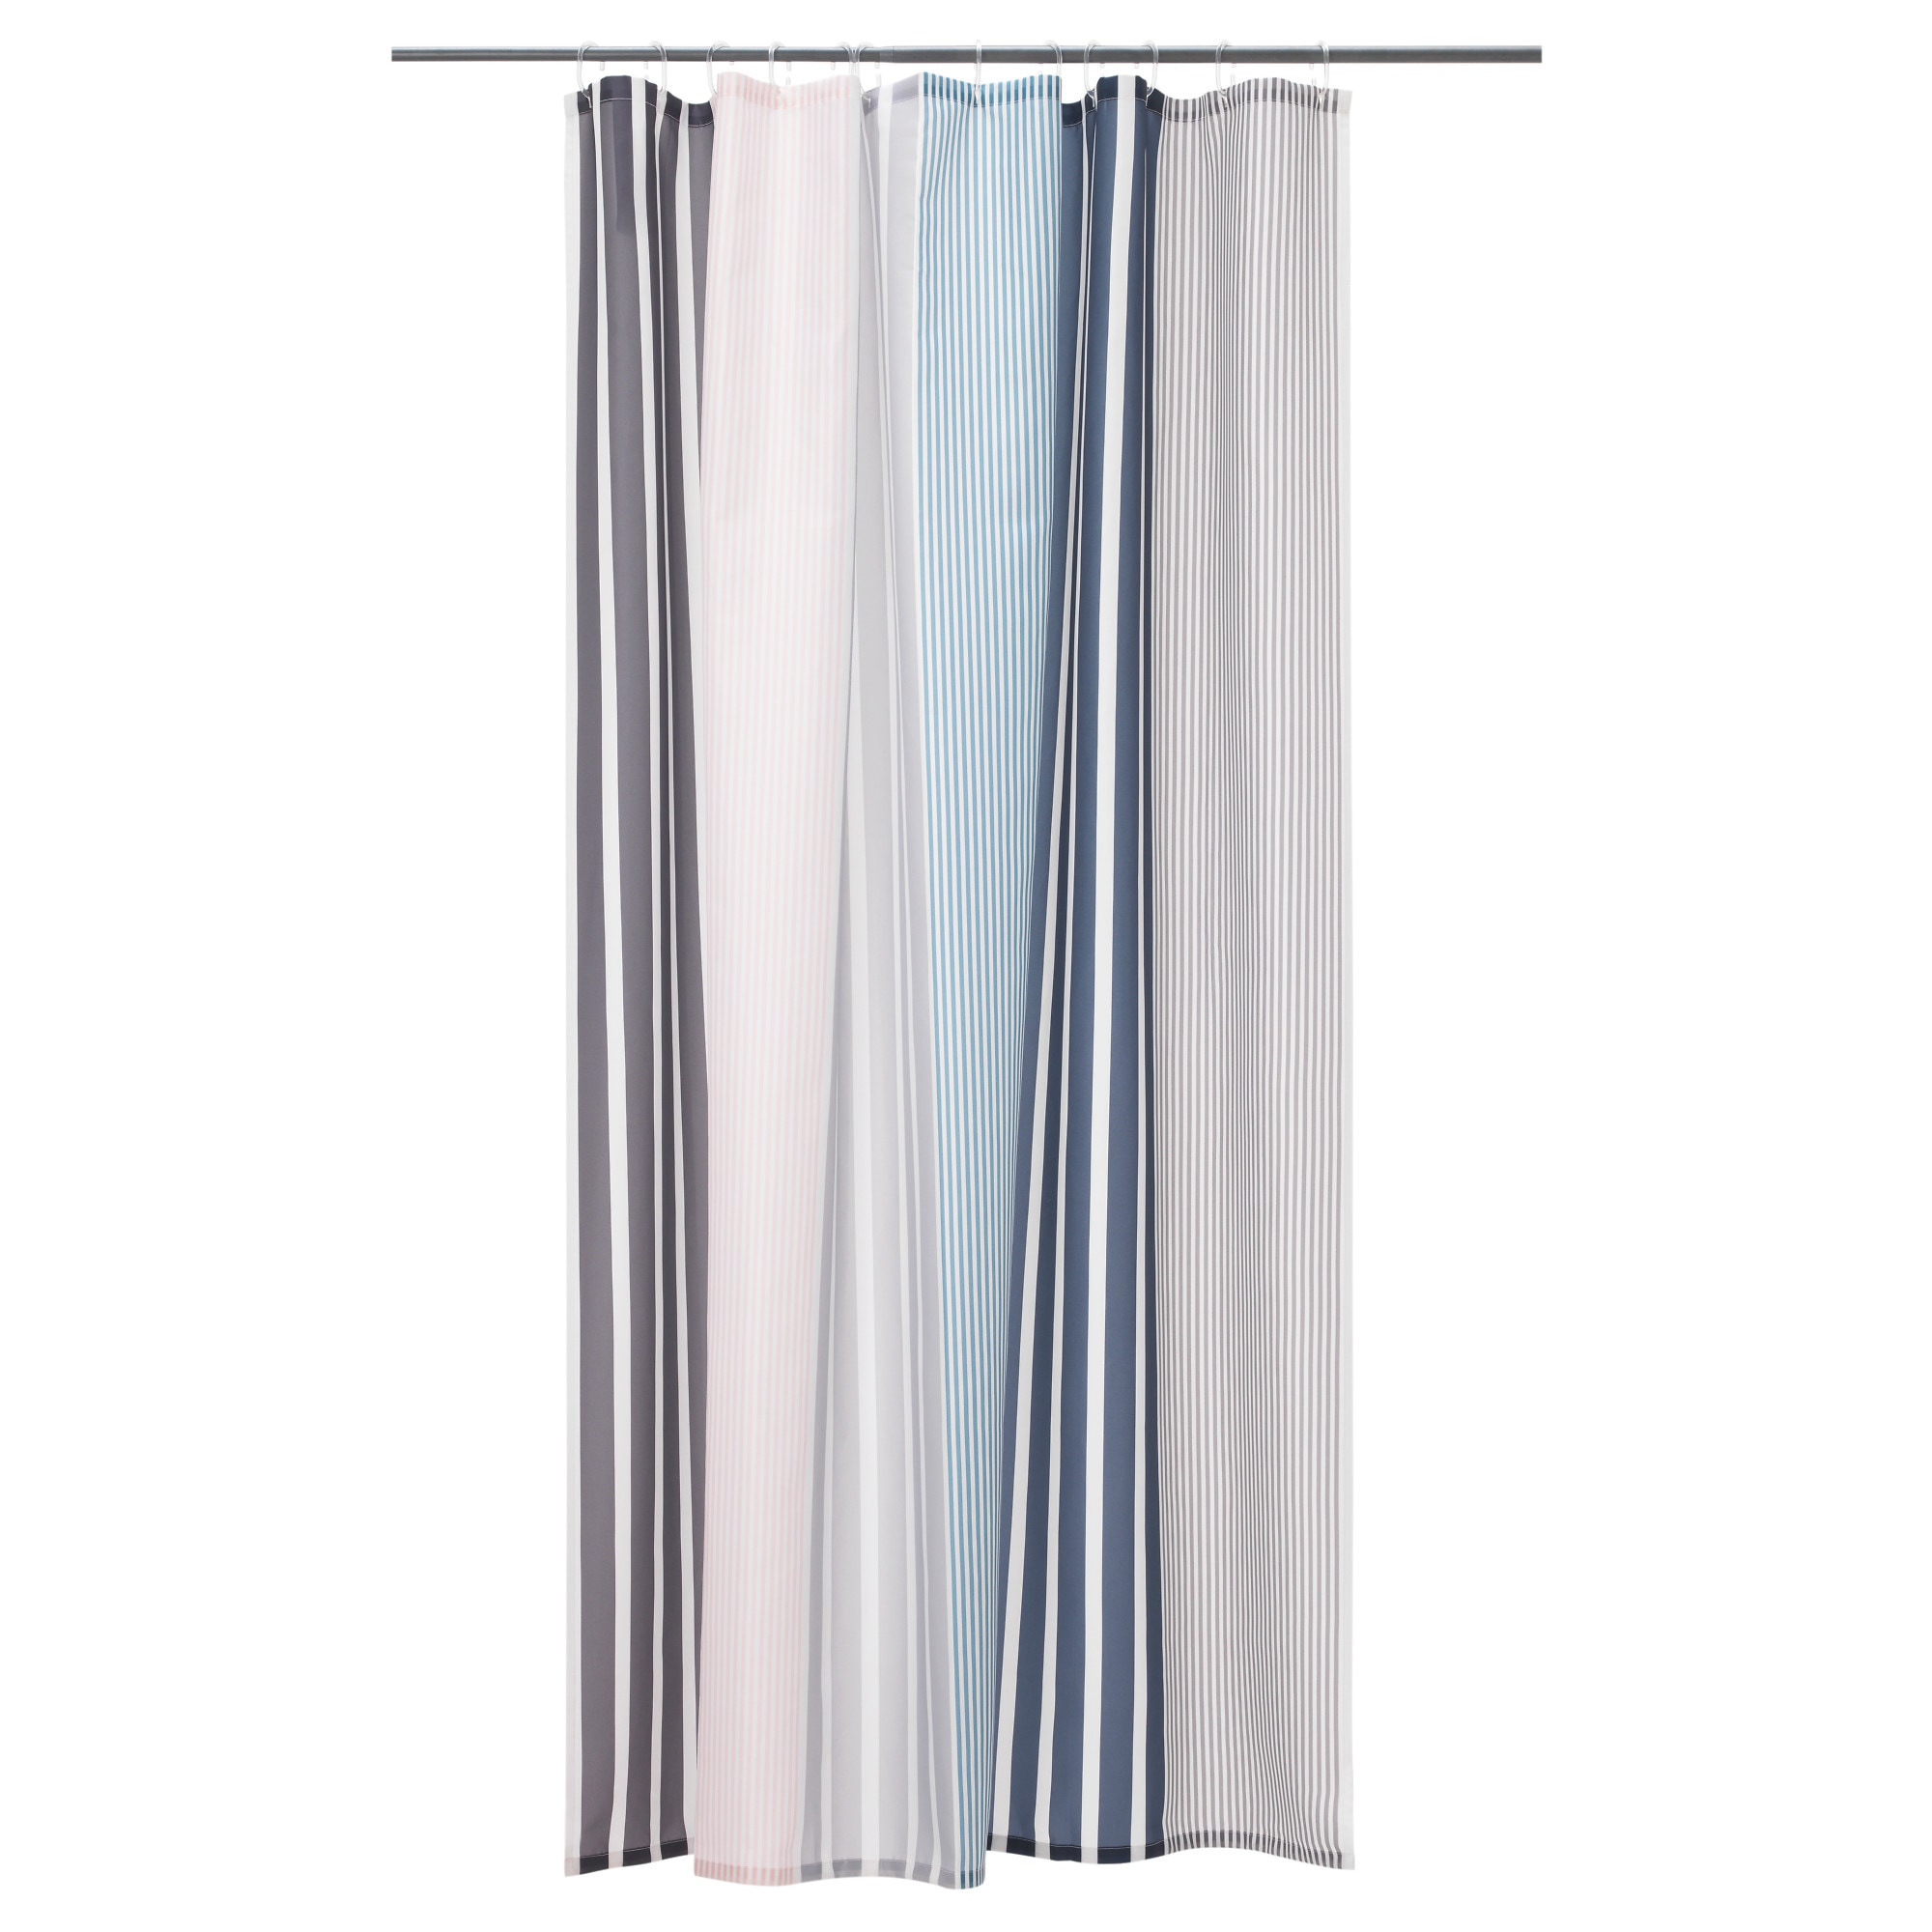 ikea sg curtain catalog products vadsj en feedback shower n